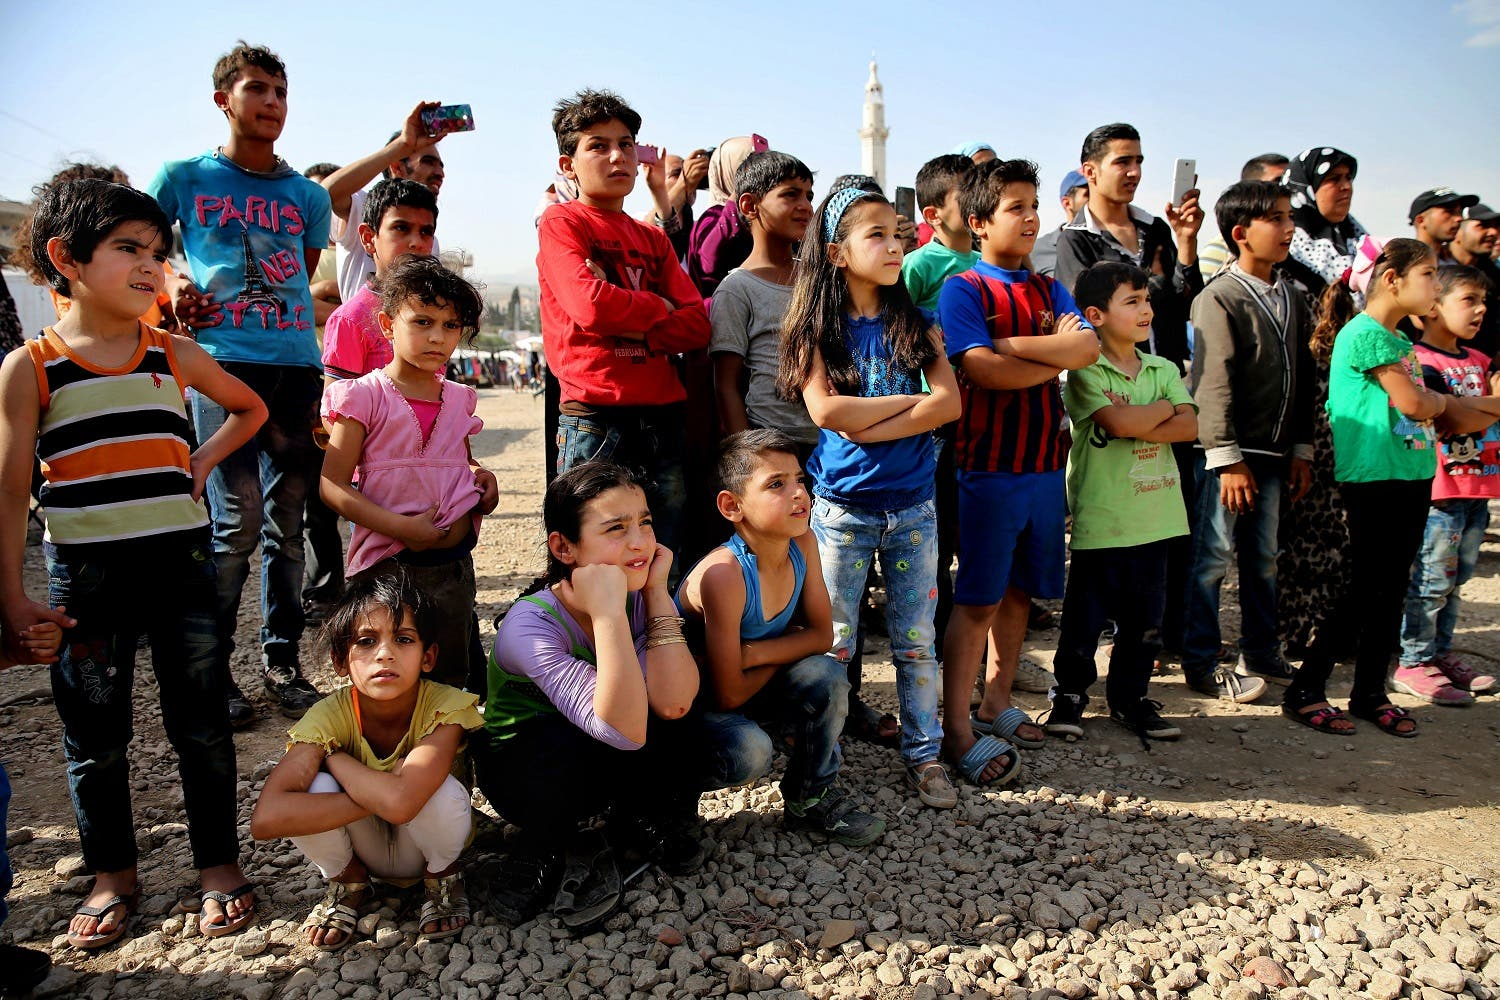 In this photo taken on Tuesday June 21, 2016, Syrian and Lebanese children watch a performance by The Caravan, a street performance project touring Lebanon, at an open market in the eastern town of Saadnayel, in Bekaa valley, Lebanon. The Caravan plans to tour Lebanon over the next six weeks, telling stories recorded and acted by Syrian refugees. And the range of reactions at the Saadnayel market is precisely what the directors of the project anticipated, even desired. Five years since the war in Syria, the influx has not stopped and Lebanese and Syrians alike are grappling to deal with the new reality in the absence of a political resolution. (AP)